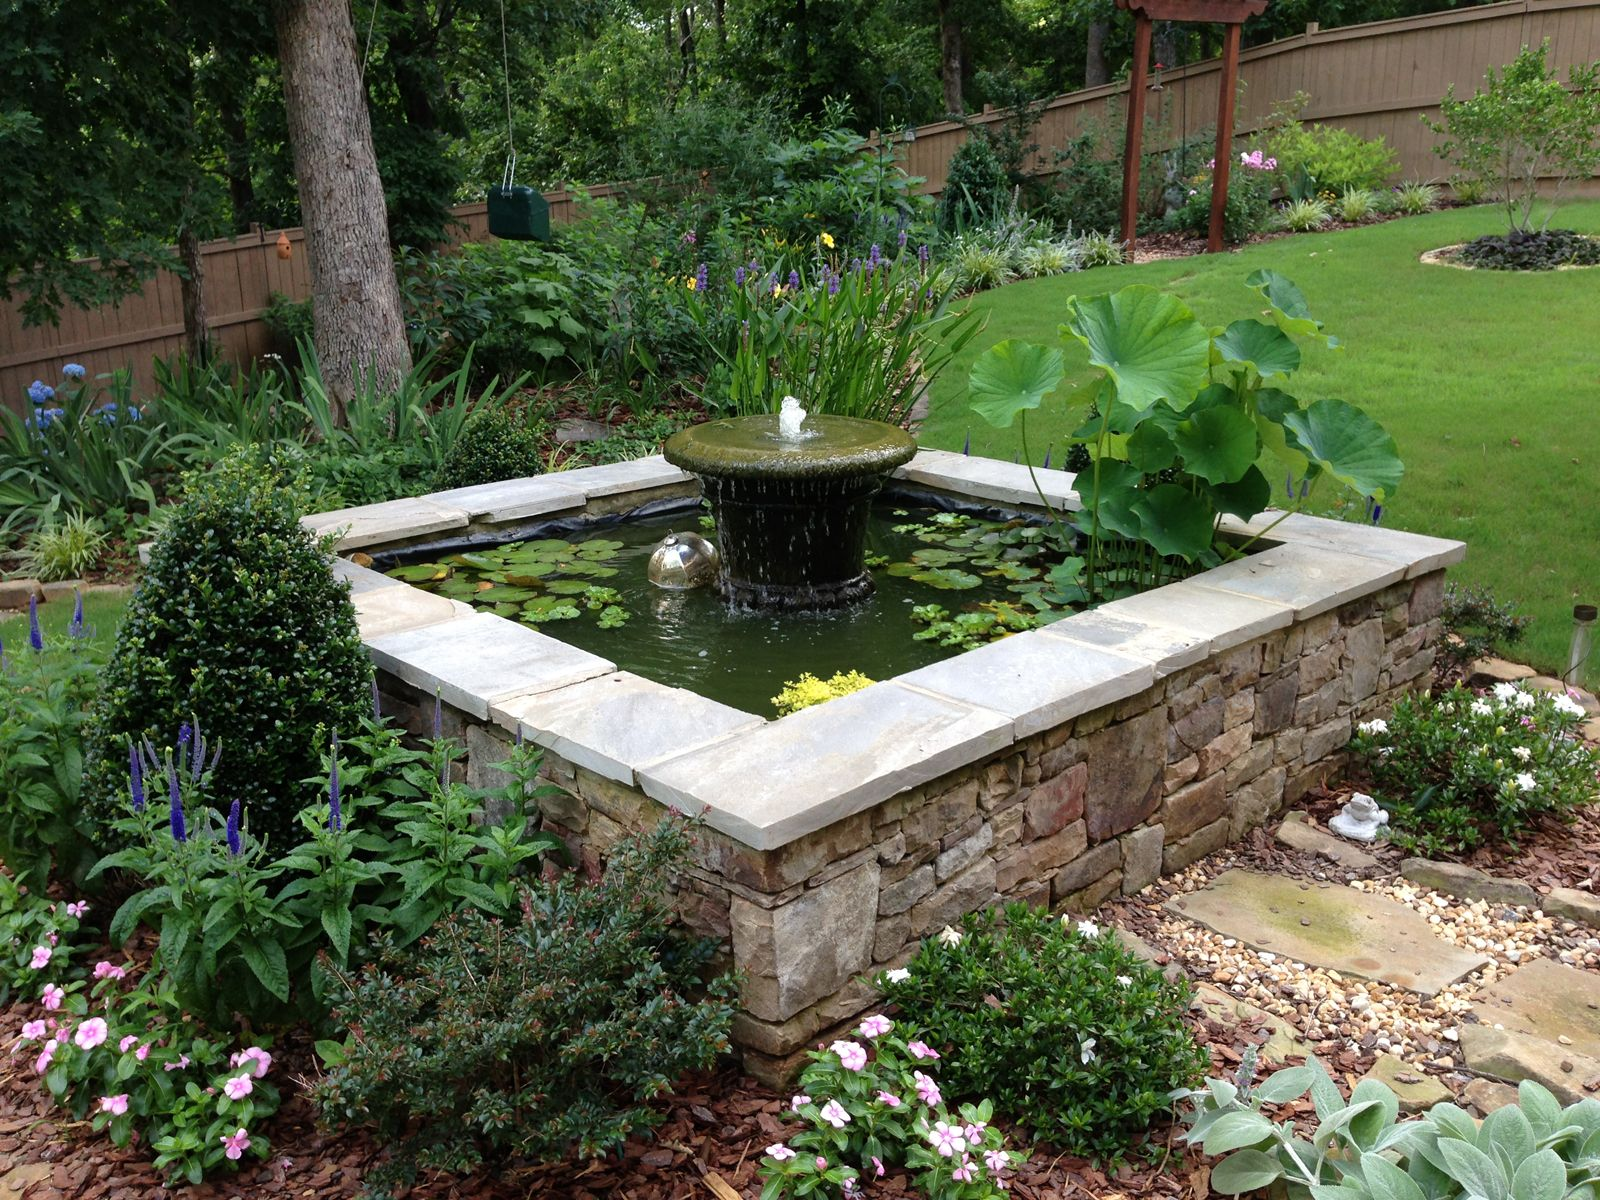 Square water pool carol bill 39 s garden in georgia for Above ground fish pond designs